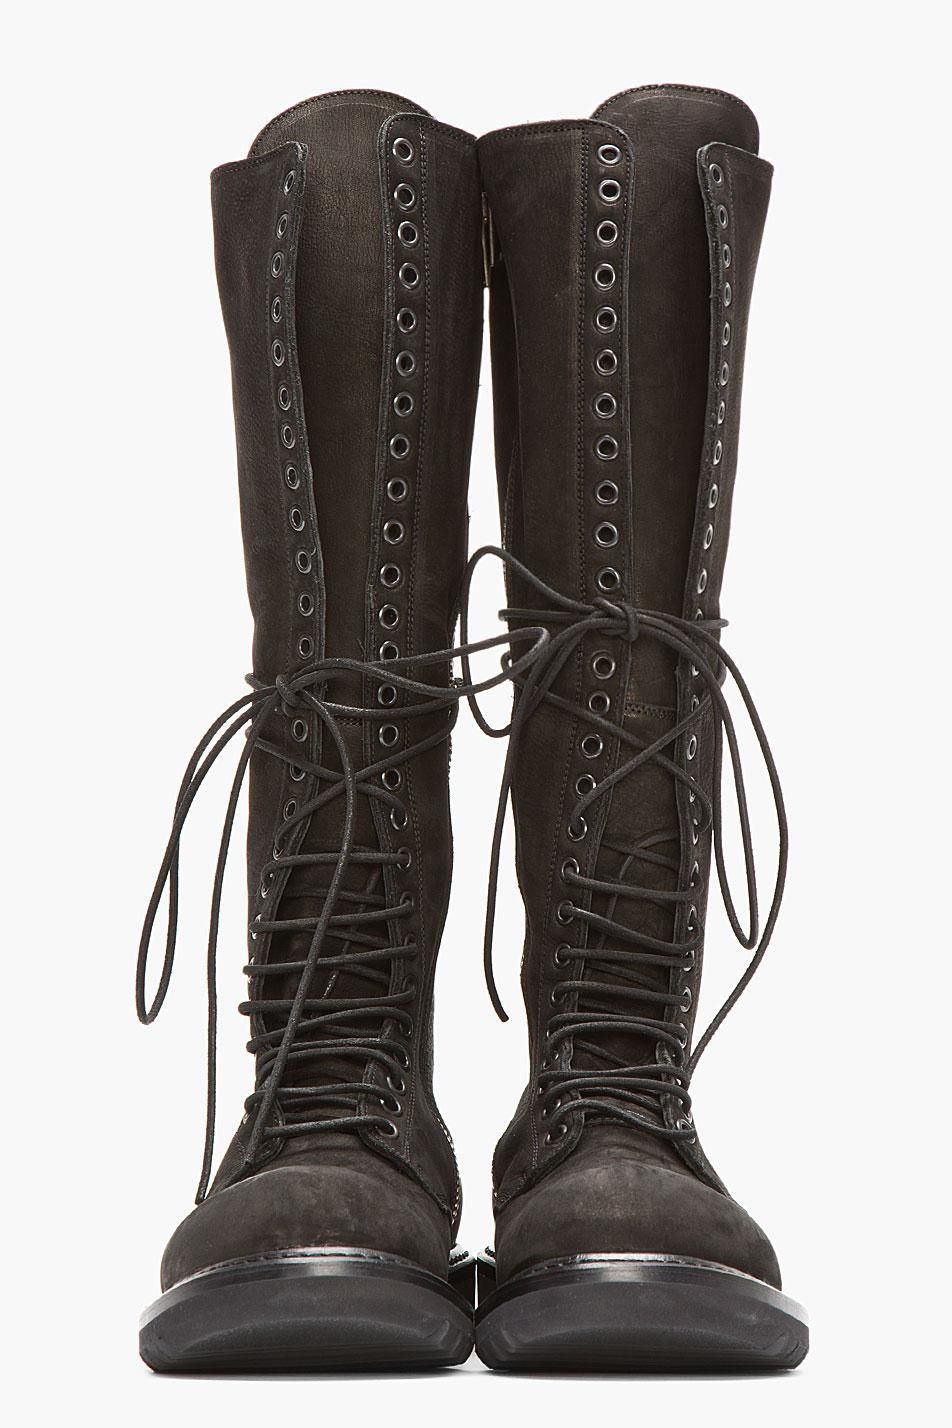 Black Nubuck & Leather Knee High Lace-Up Combat Boots on Wantering ...